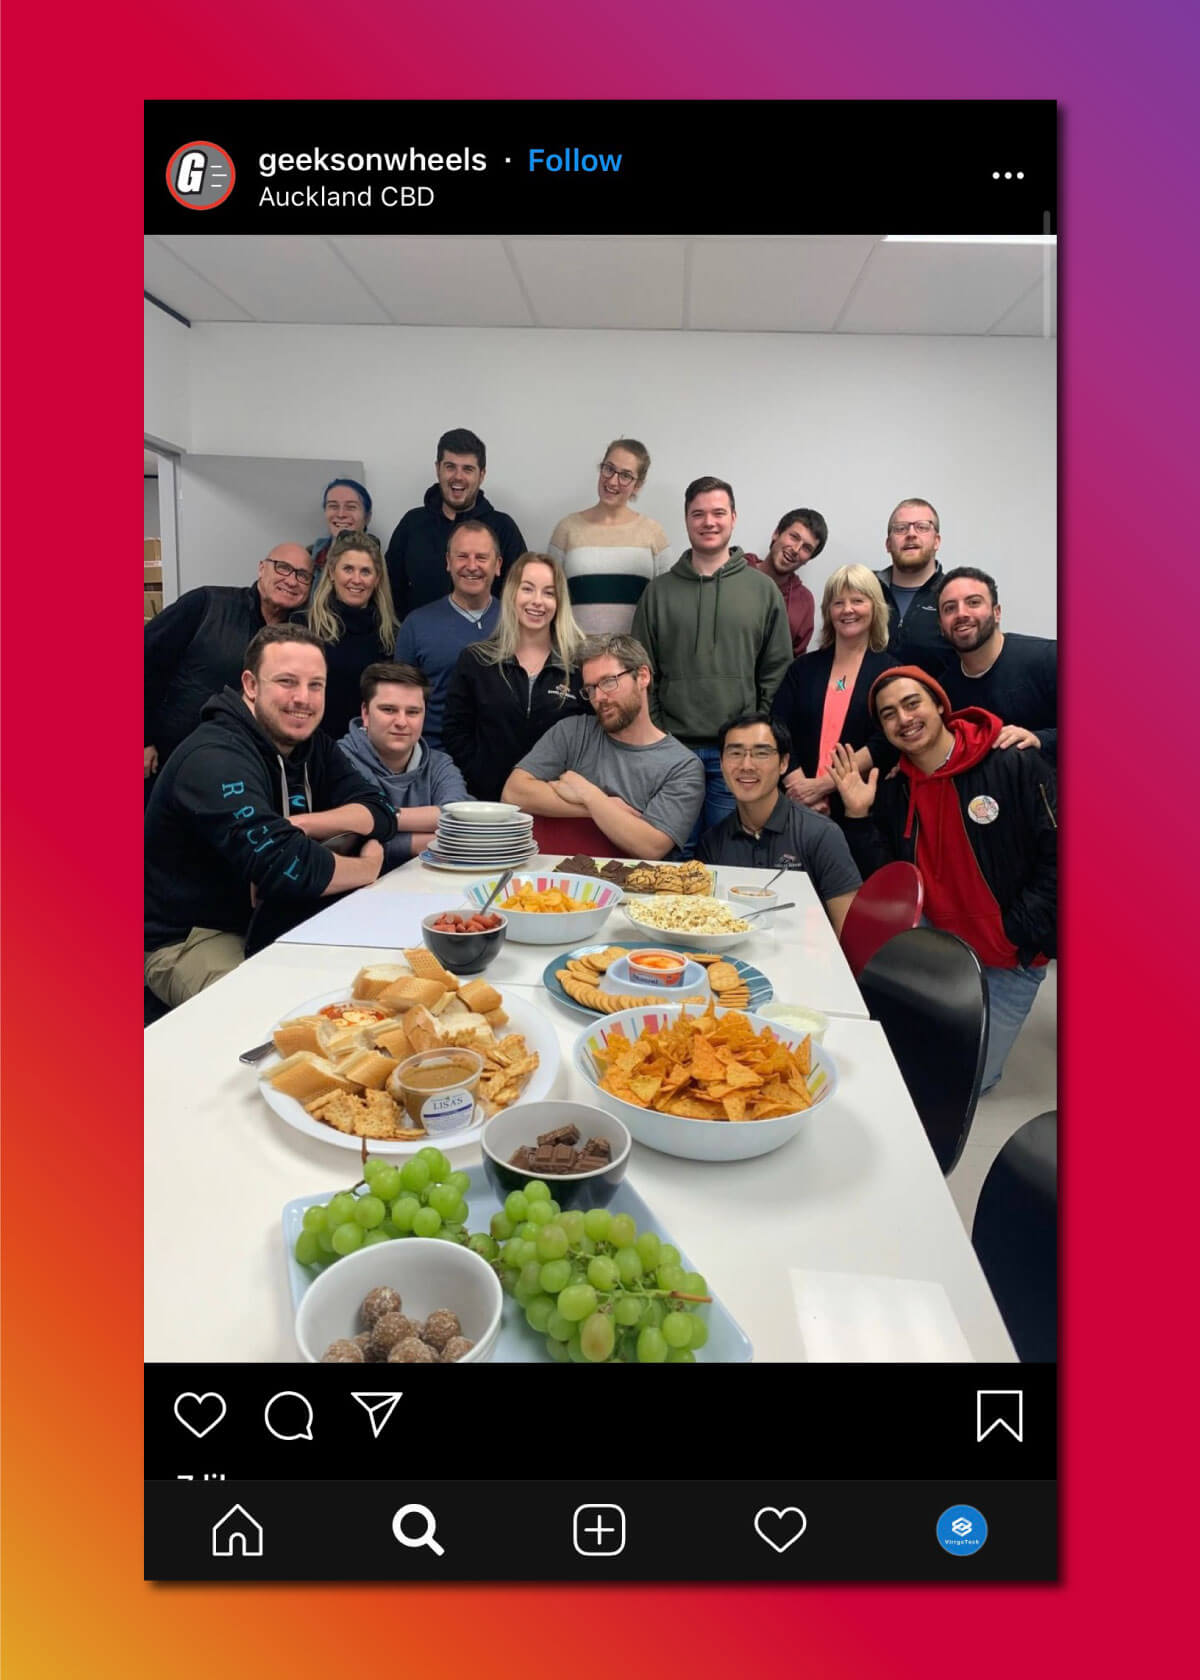 Instagram Marketing Strategy - Behind the Scene Posts